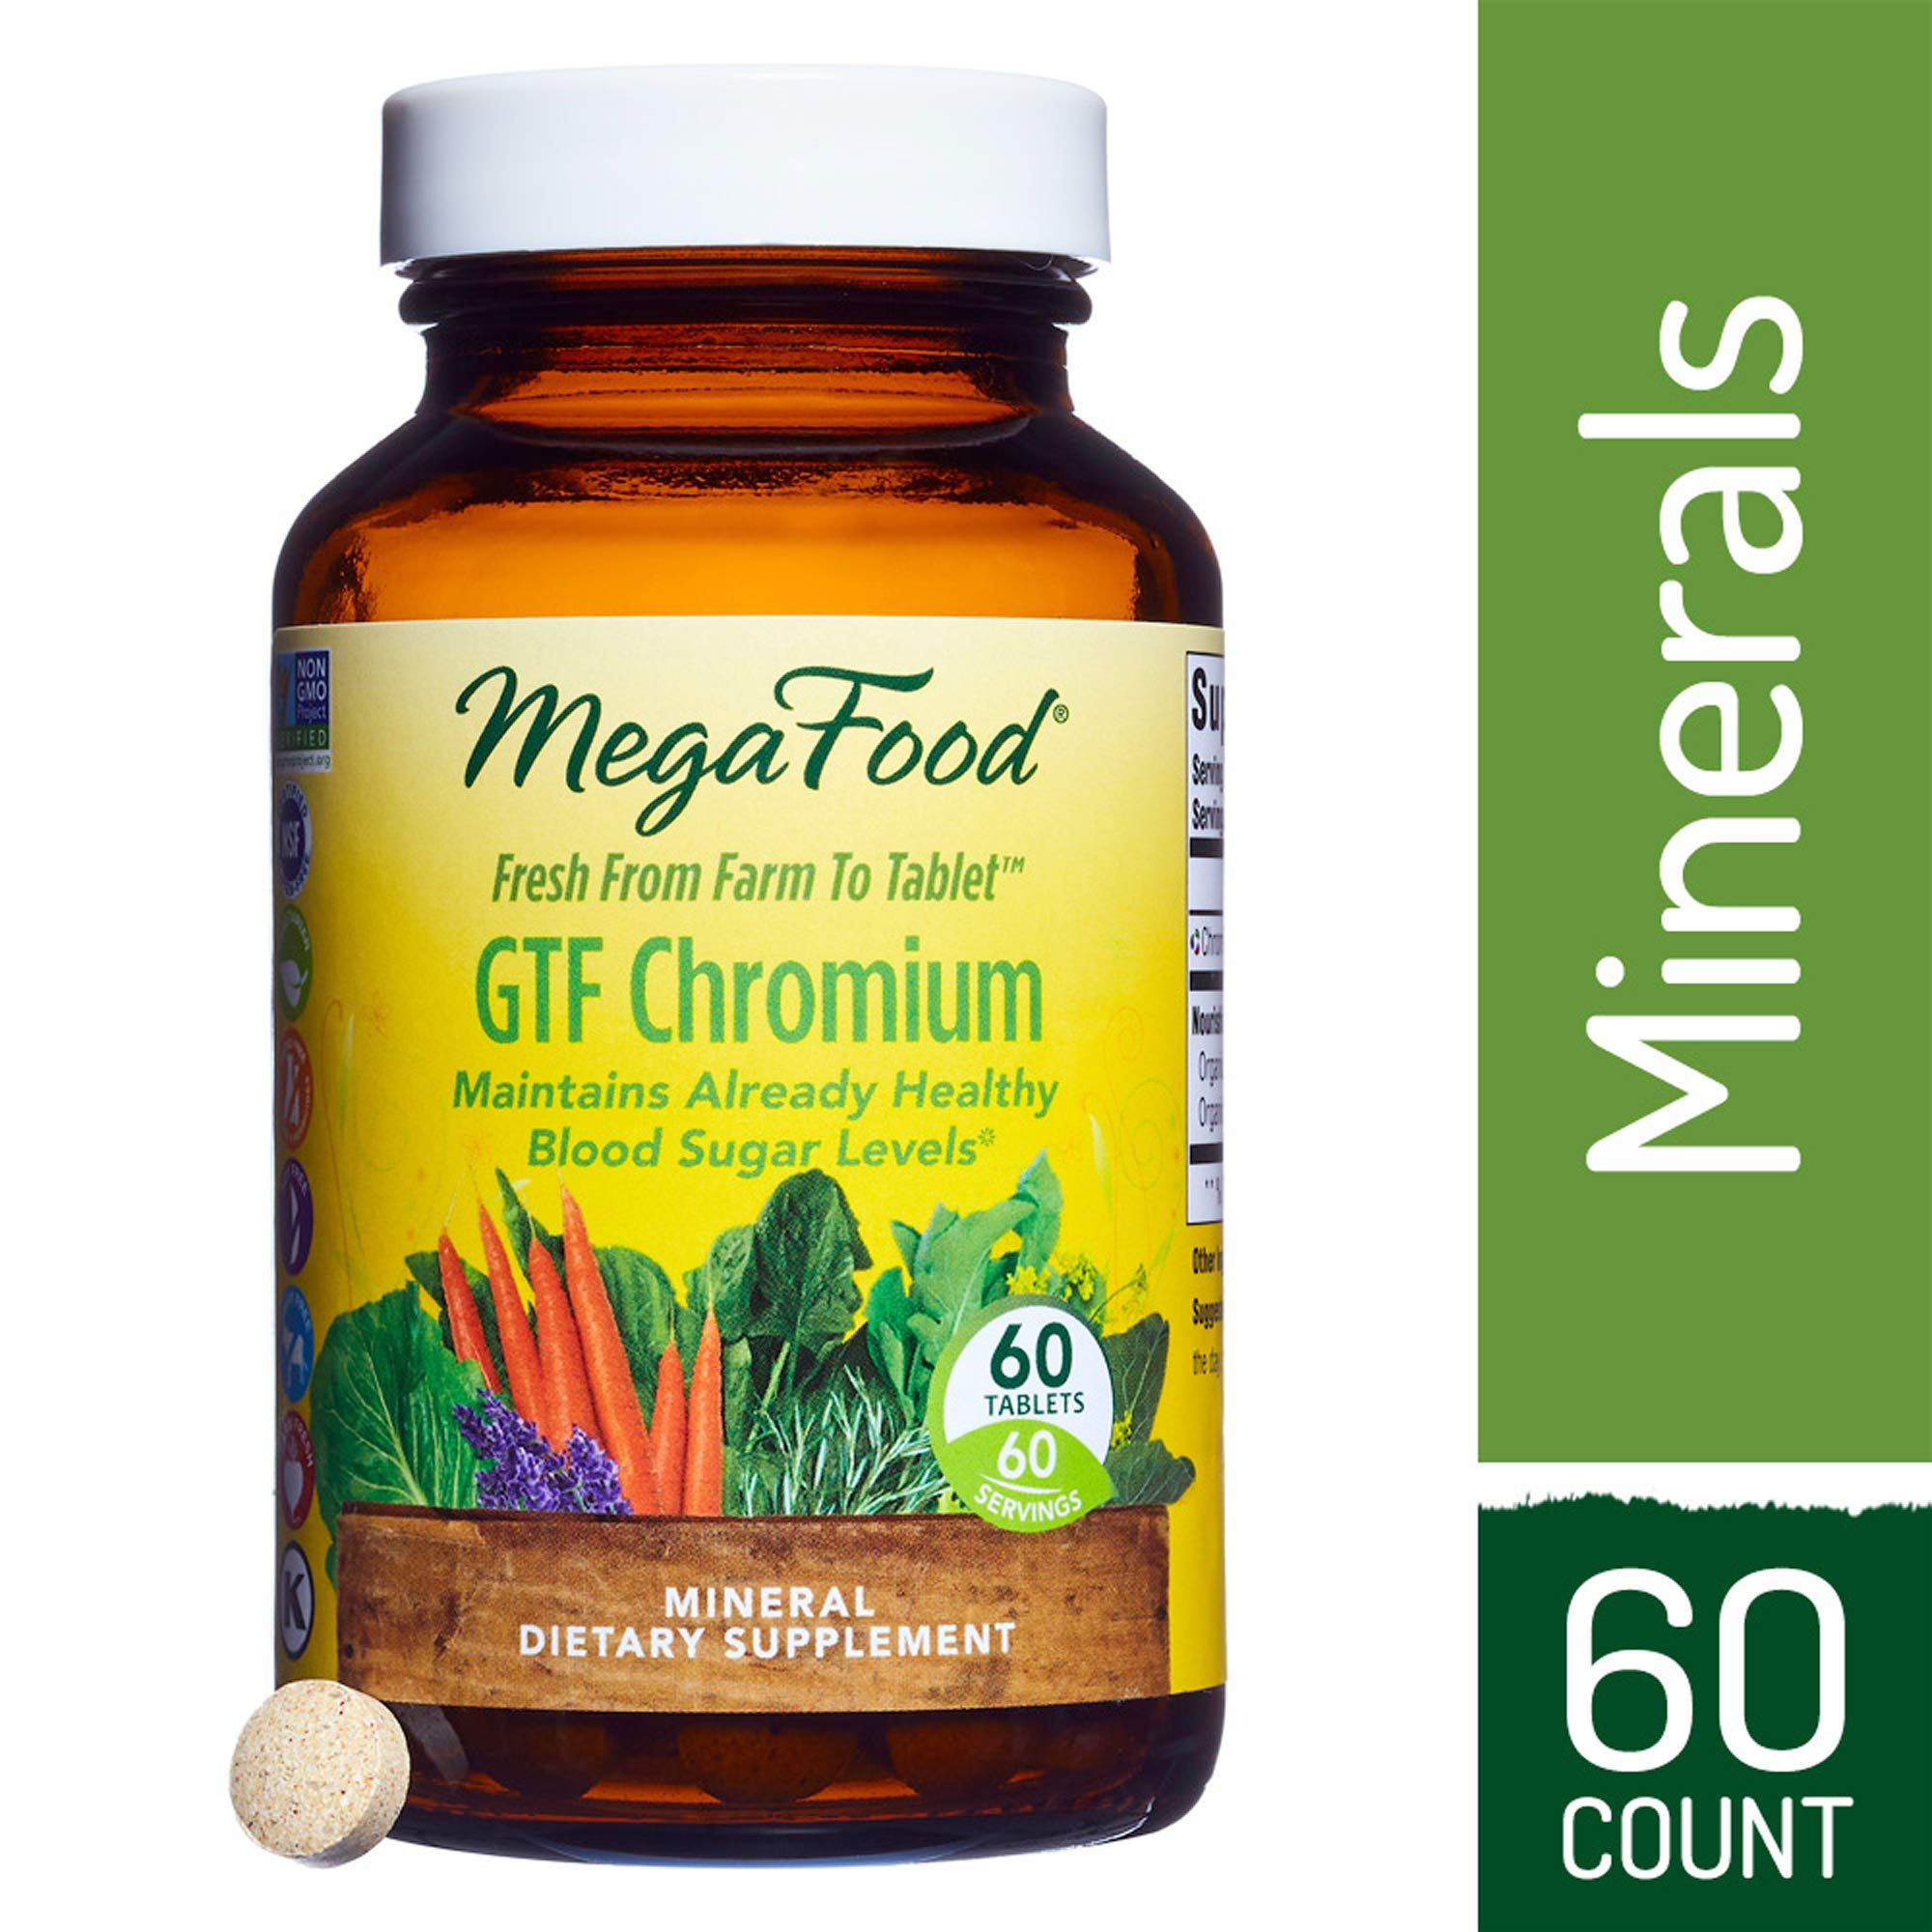 MegaFood - GTF Chromium, Helps Maintain Healthy Blood Sugar Levels and Supports Glucose Metabolism with Organic Herbs, Vegetarian, Gluten-Free, Non-GMO, 60 Tablets (FFP)